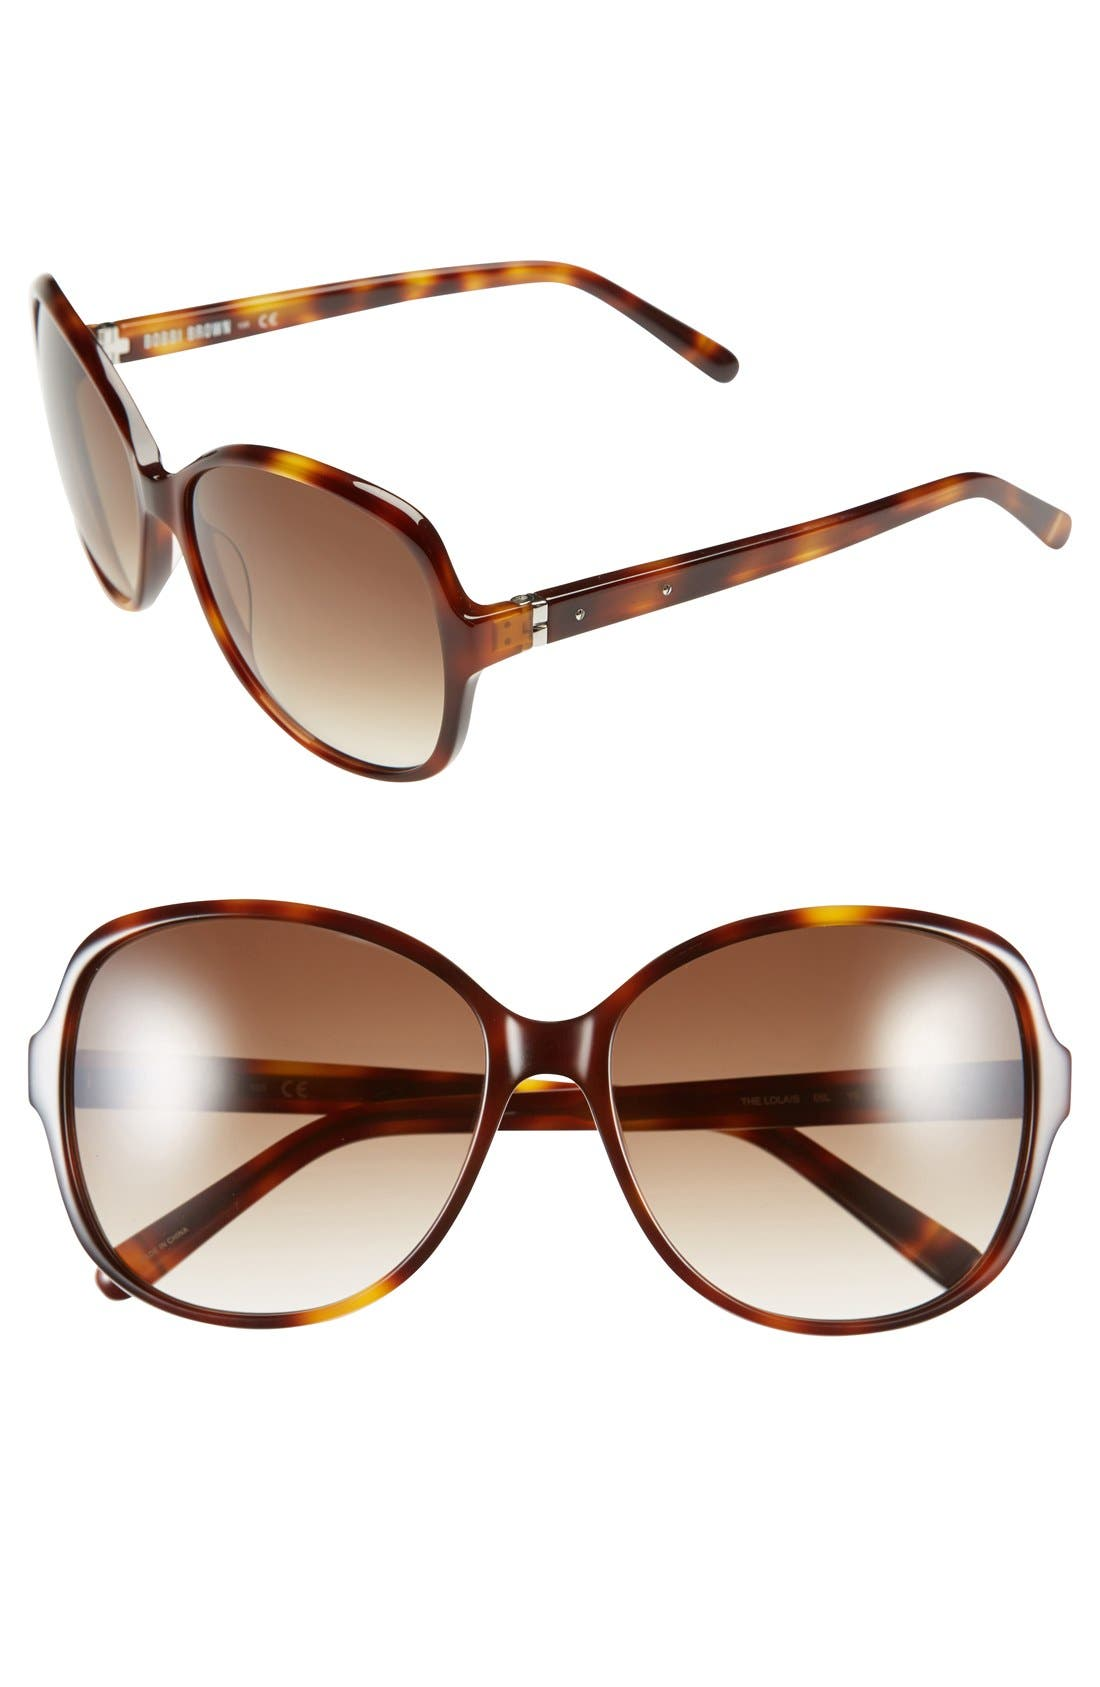 Main Image - Bobbi Brown 'The Lola' 59mm Sunglasses